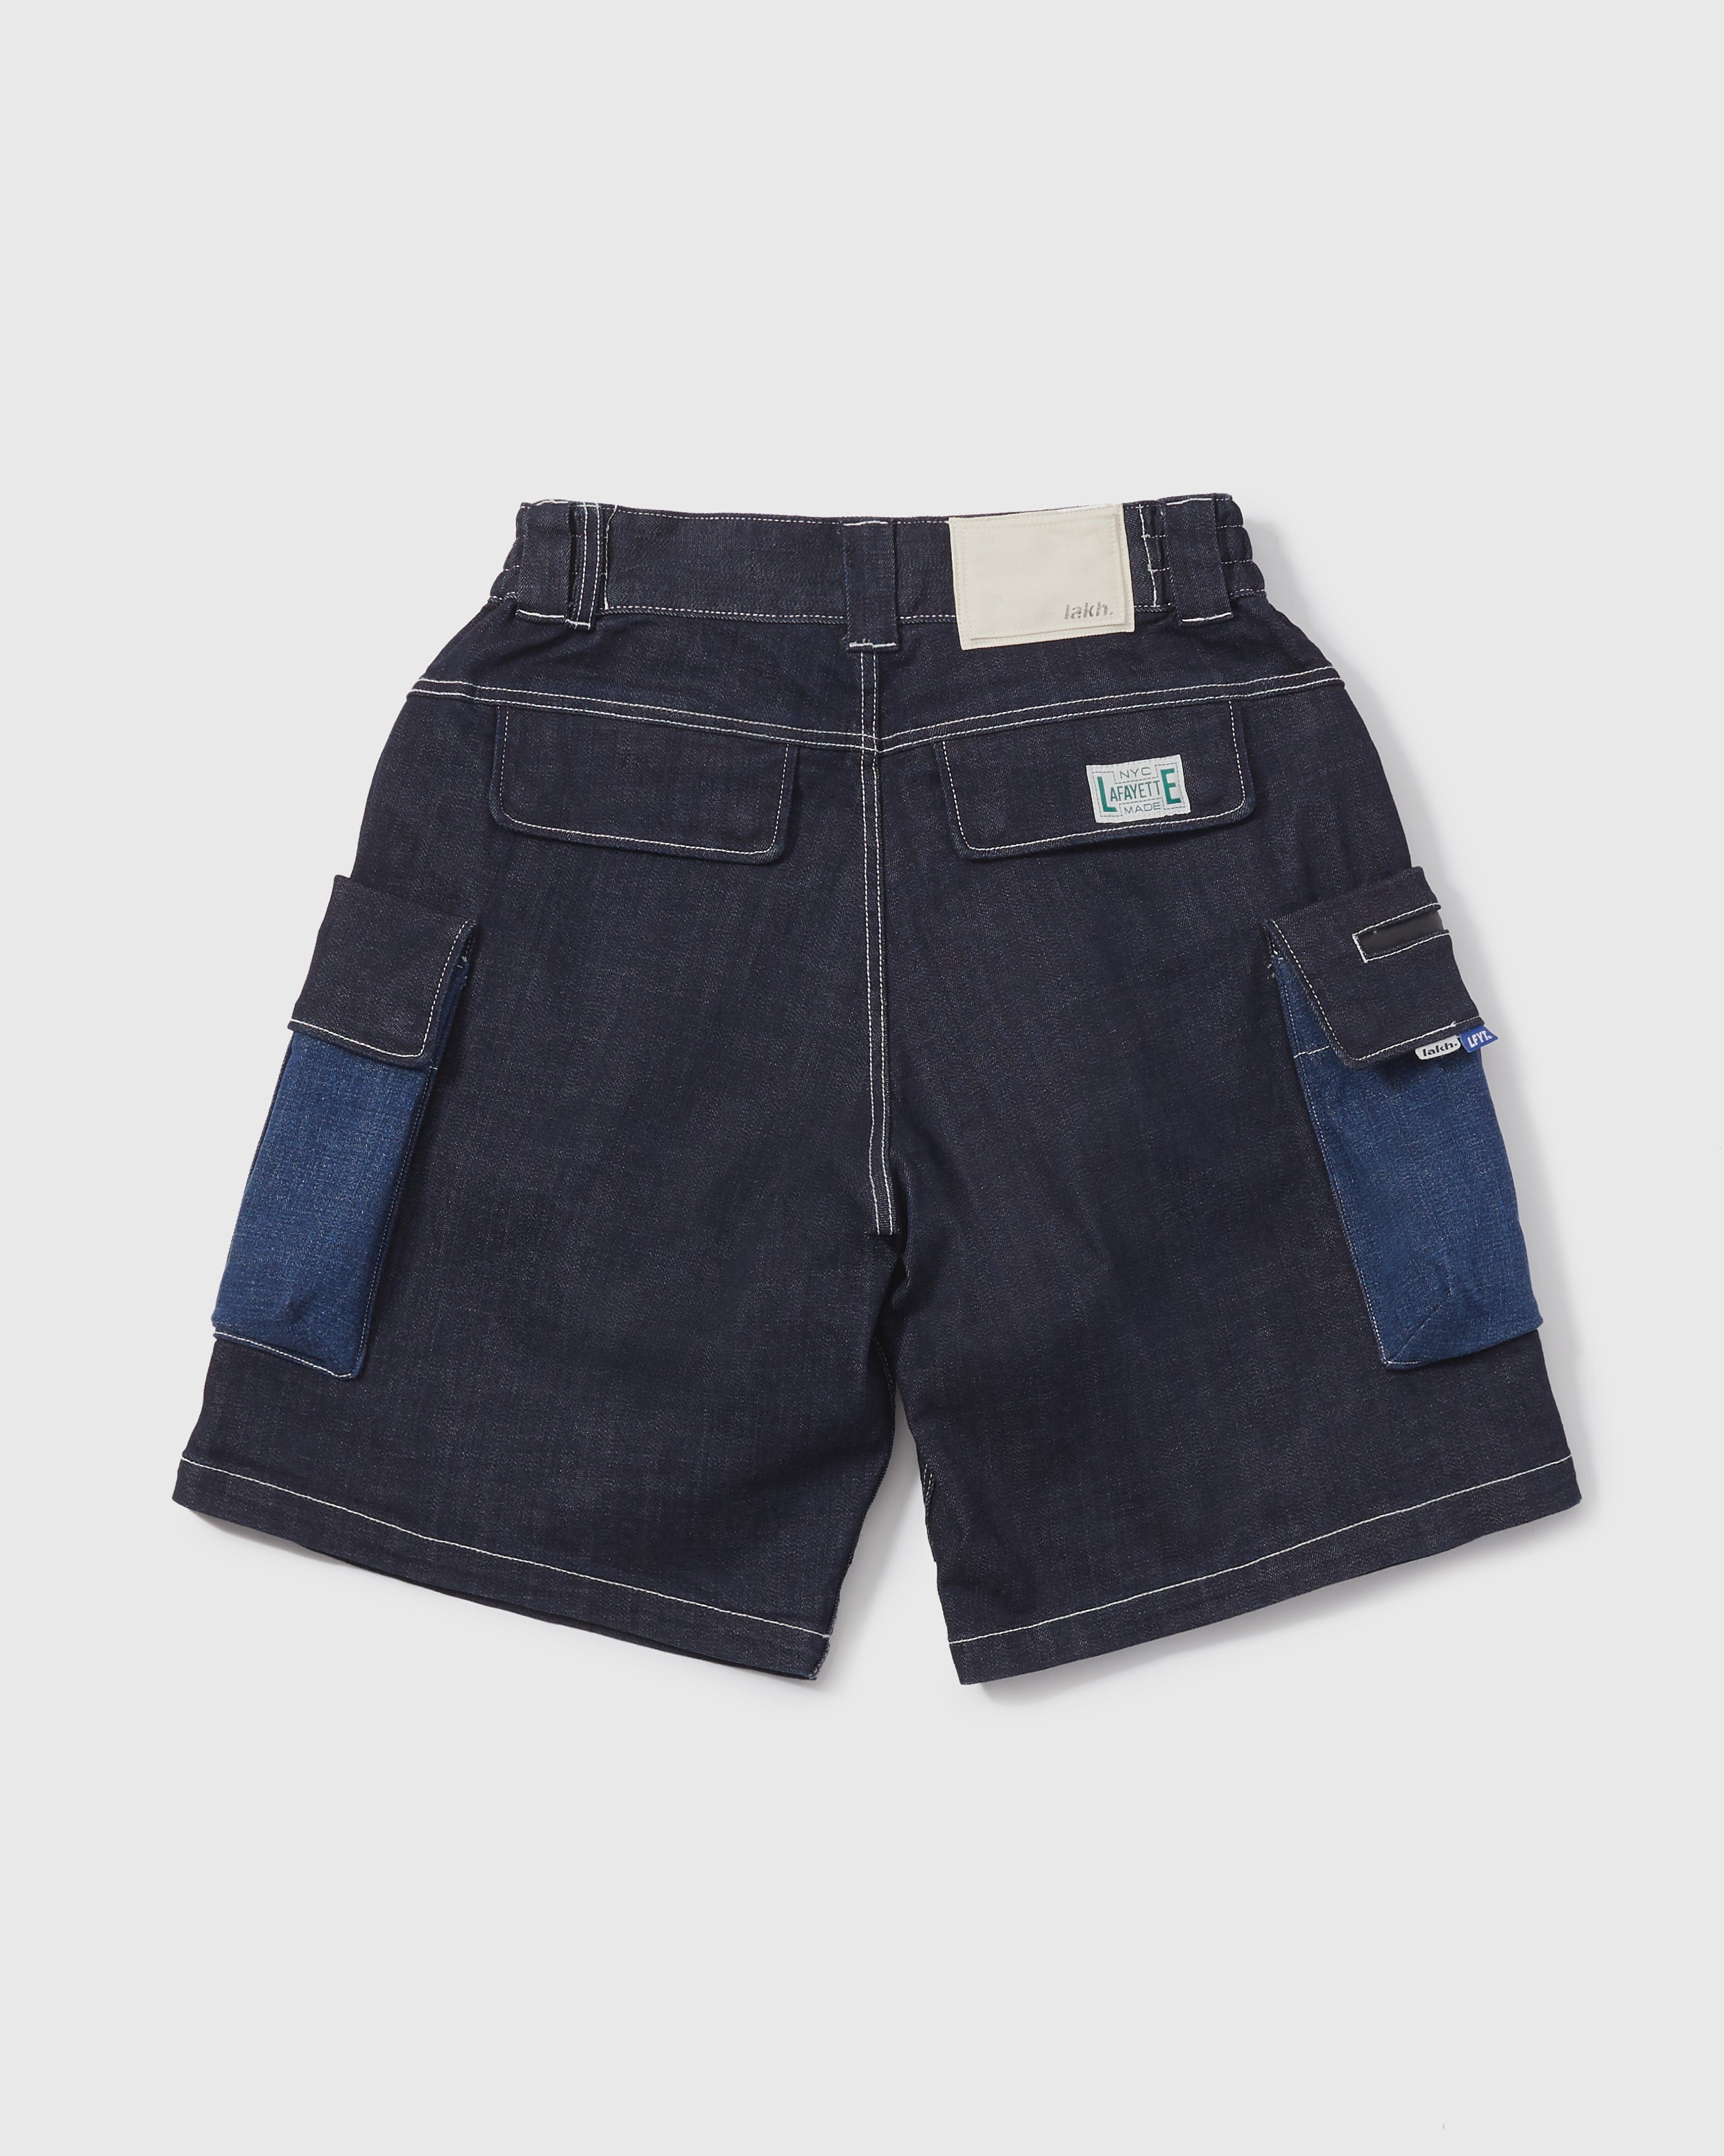 LAKH X LFYT Ten Pockets Cargo Shorts - Navy